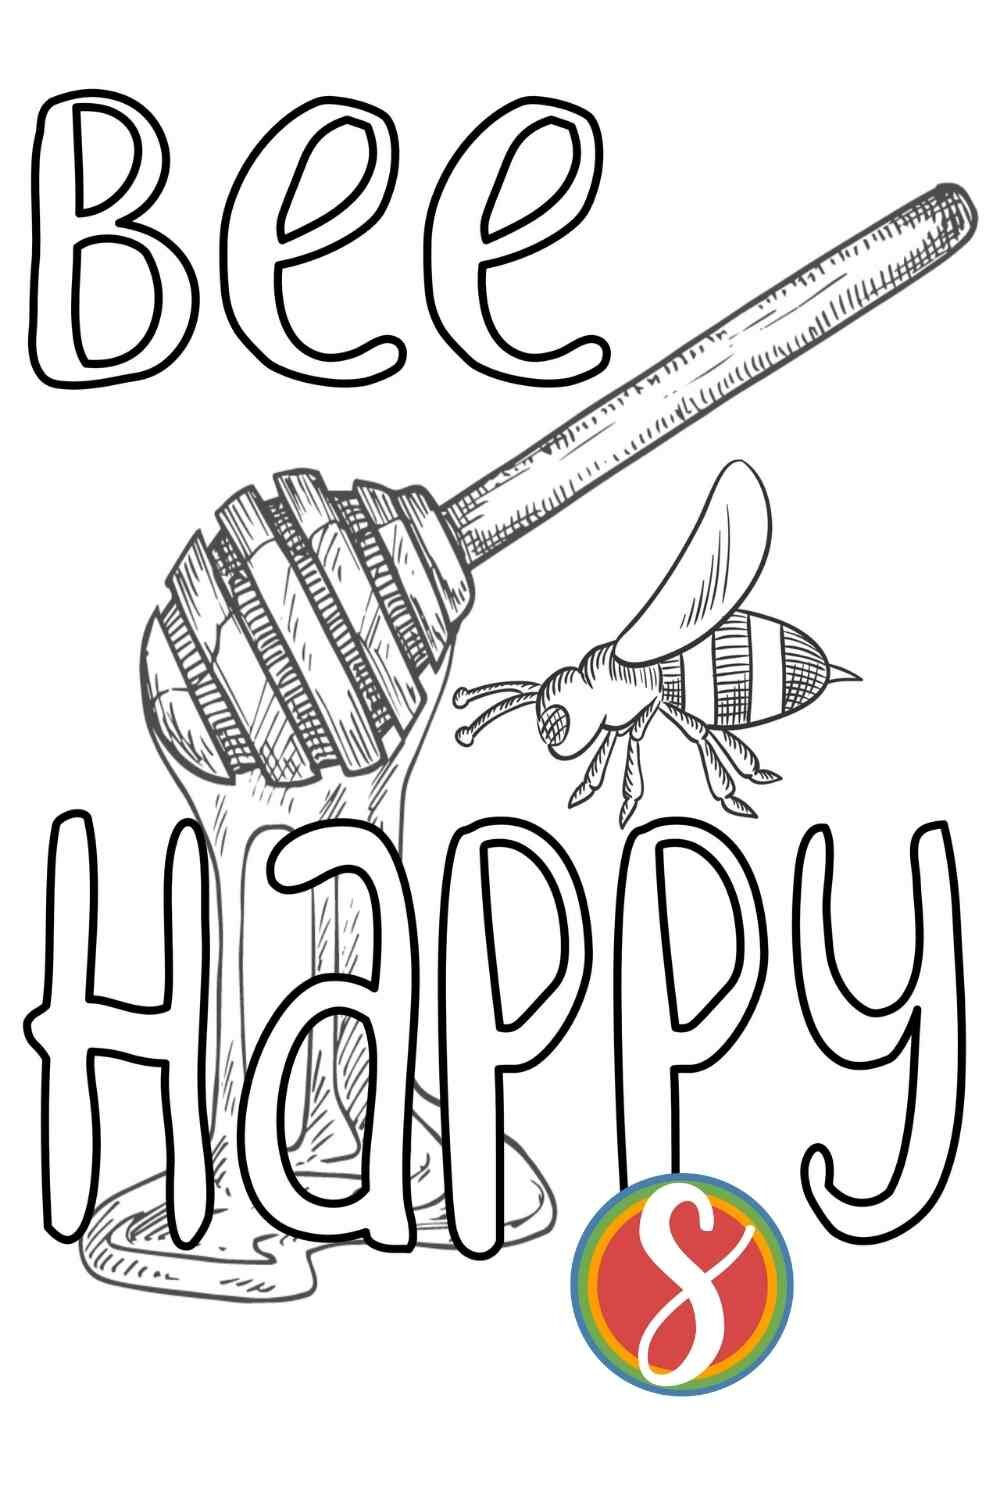 """Free bee coloring page from Stevie Doodles! """"Bee Happy"""" - a bee and some honey on this cute bee coloring page. So simple and fun to color."""